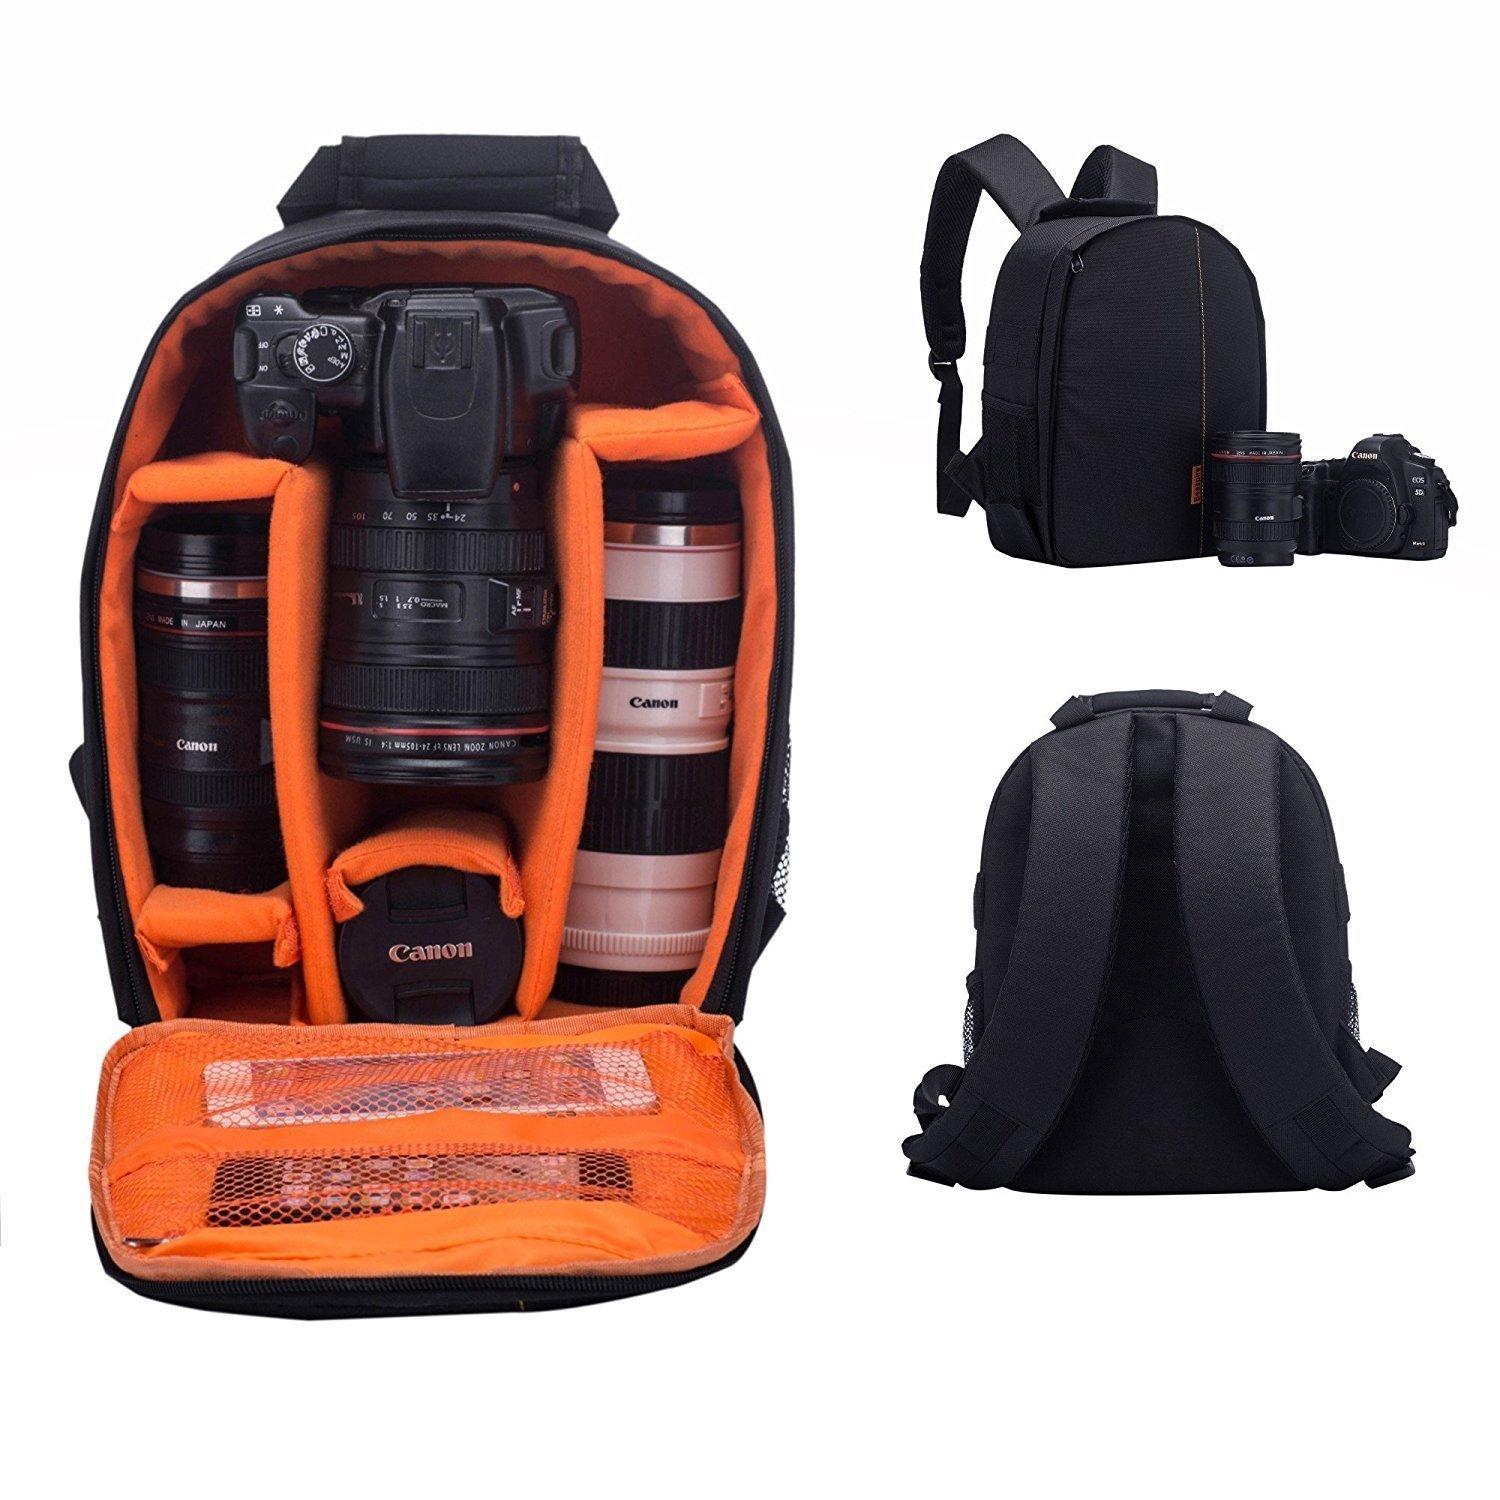 Camera Shockproof Backpack DSLR Hiking Camera Bag Waterproof for Canon, Nikon, Sony, Olympus, Samsung, Panasonic, Pentax Cameras and Other Accessories